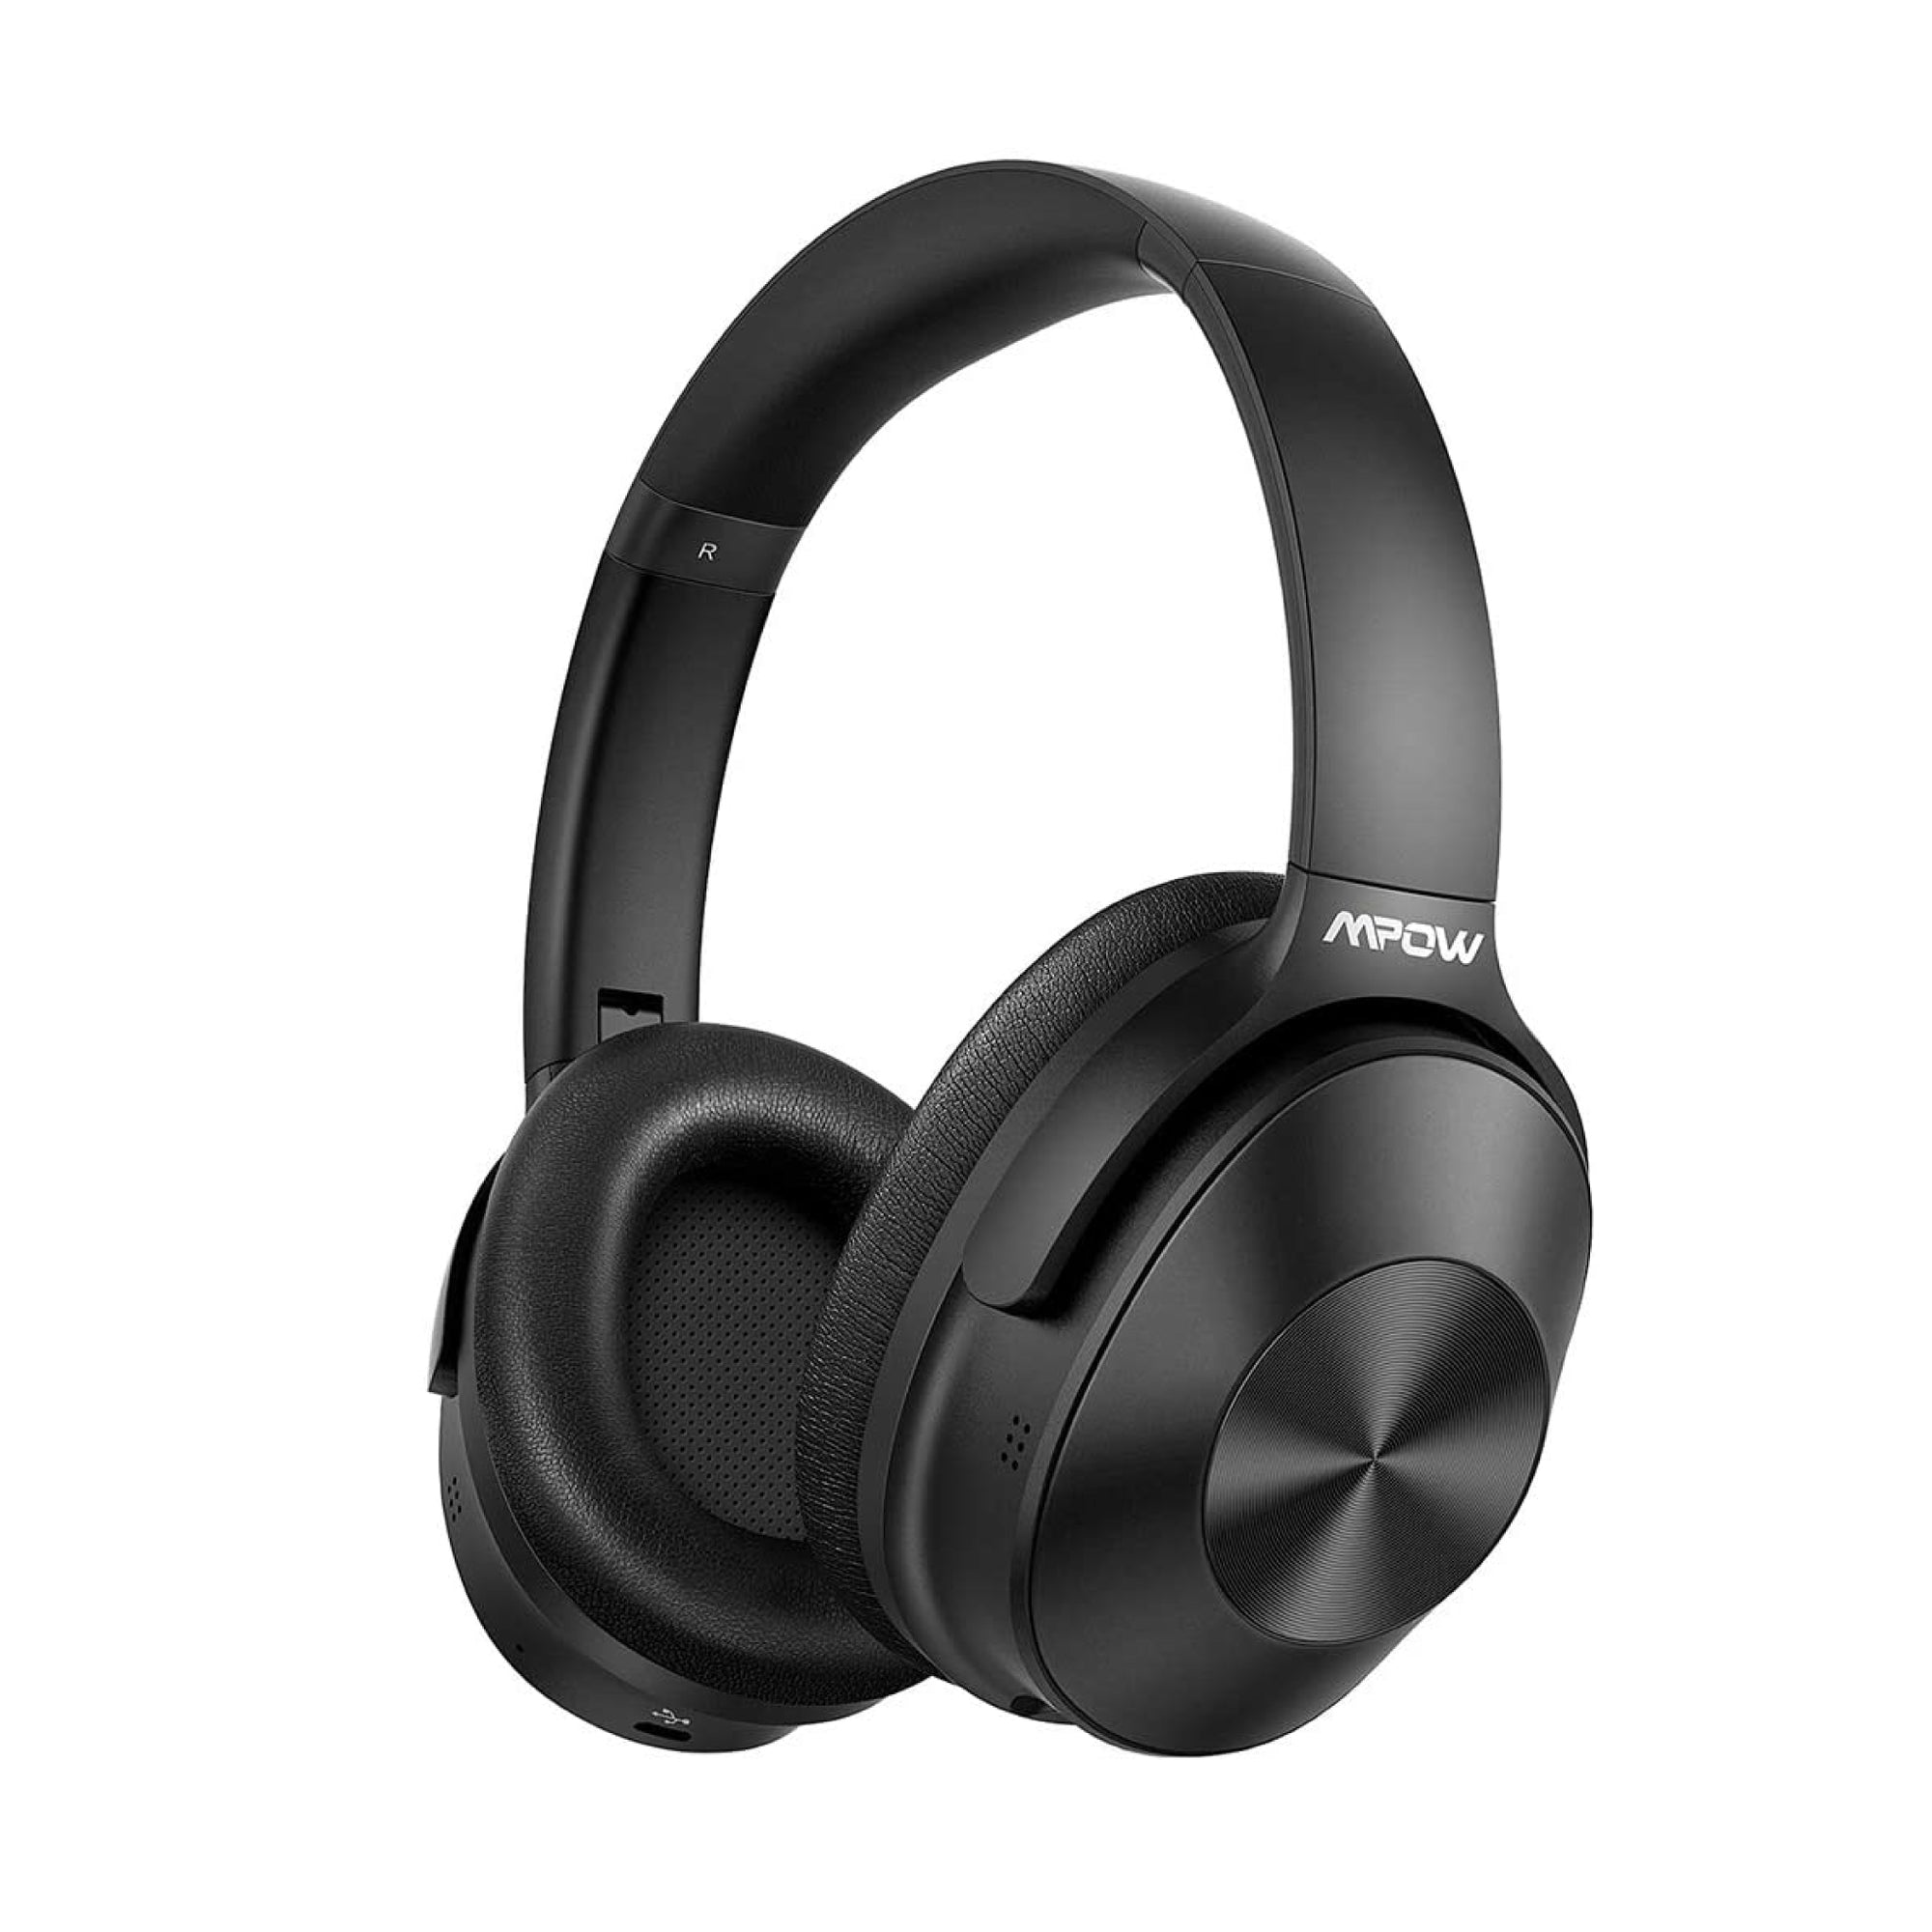 MPOW H12 ANC Headphones - Gears For Ears